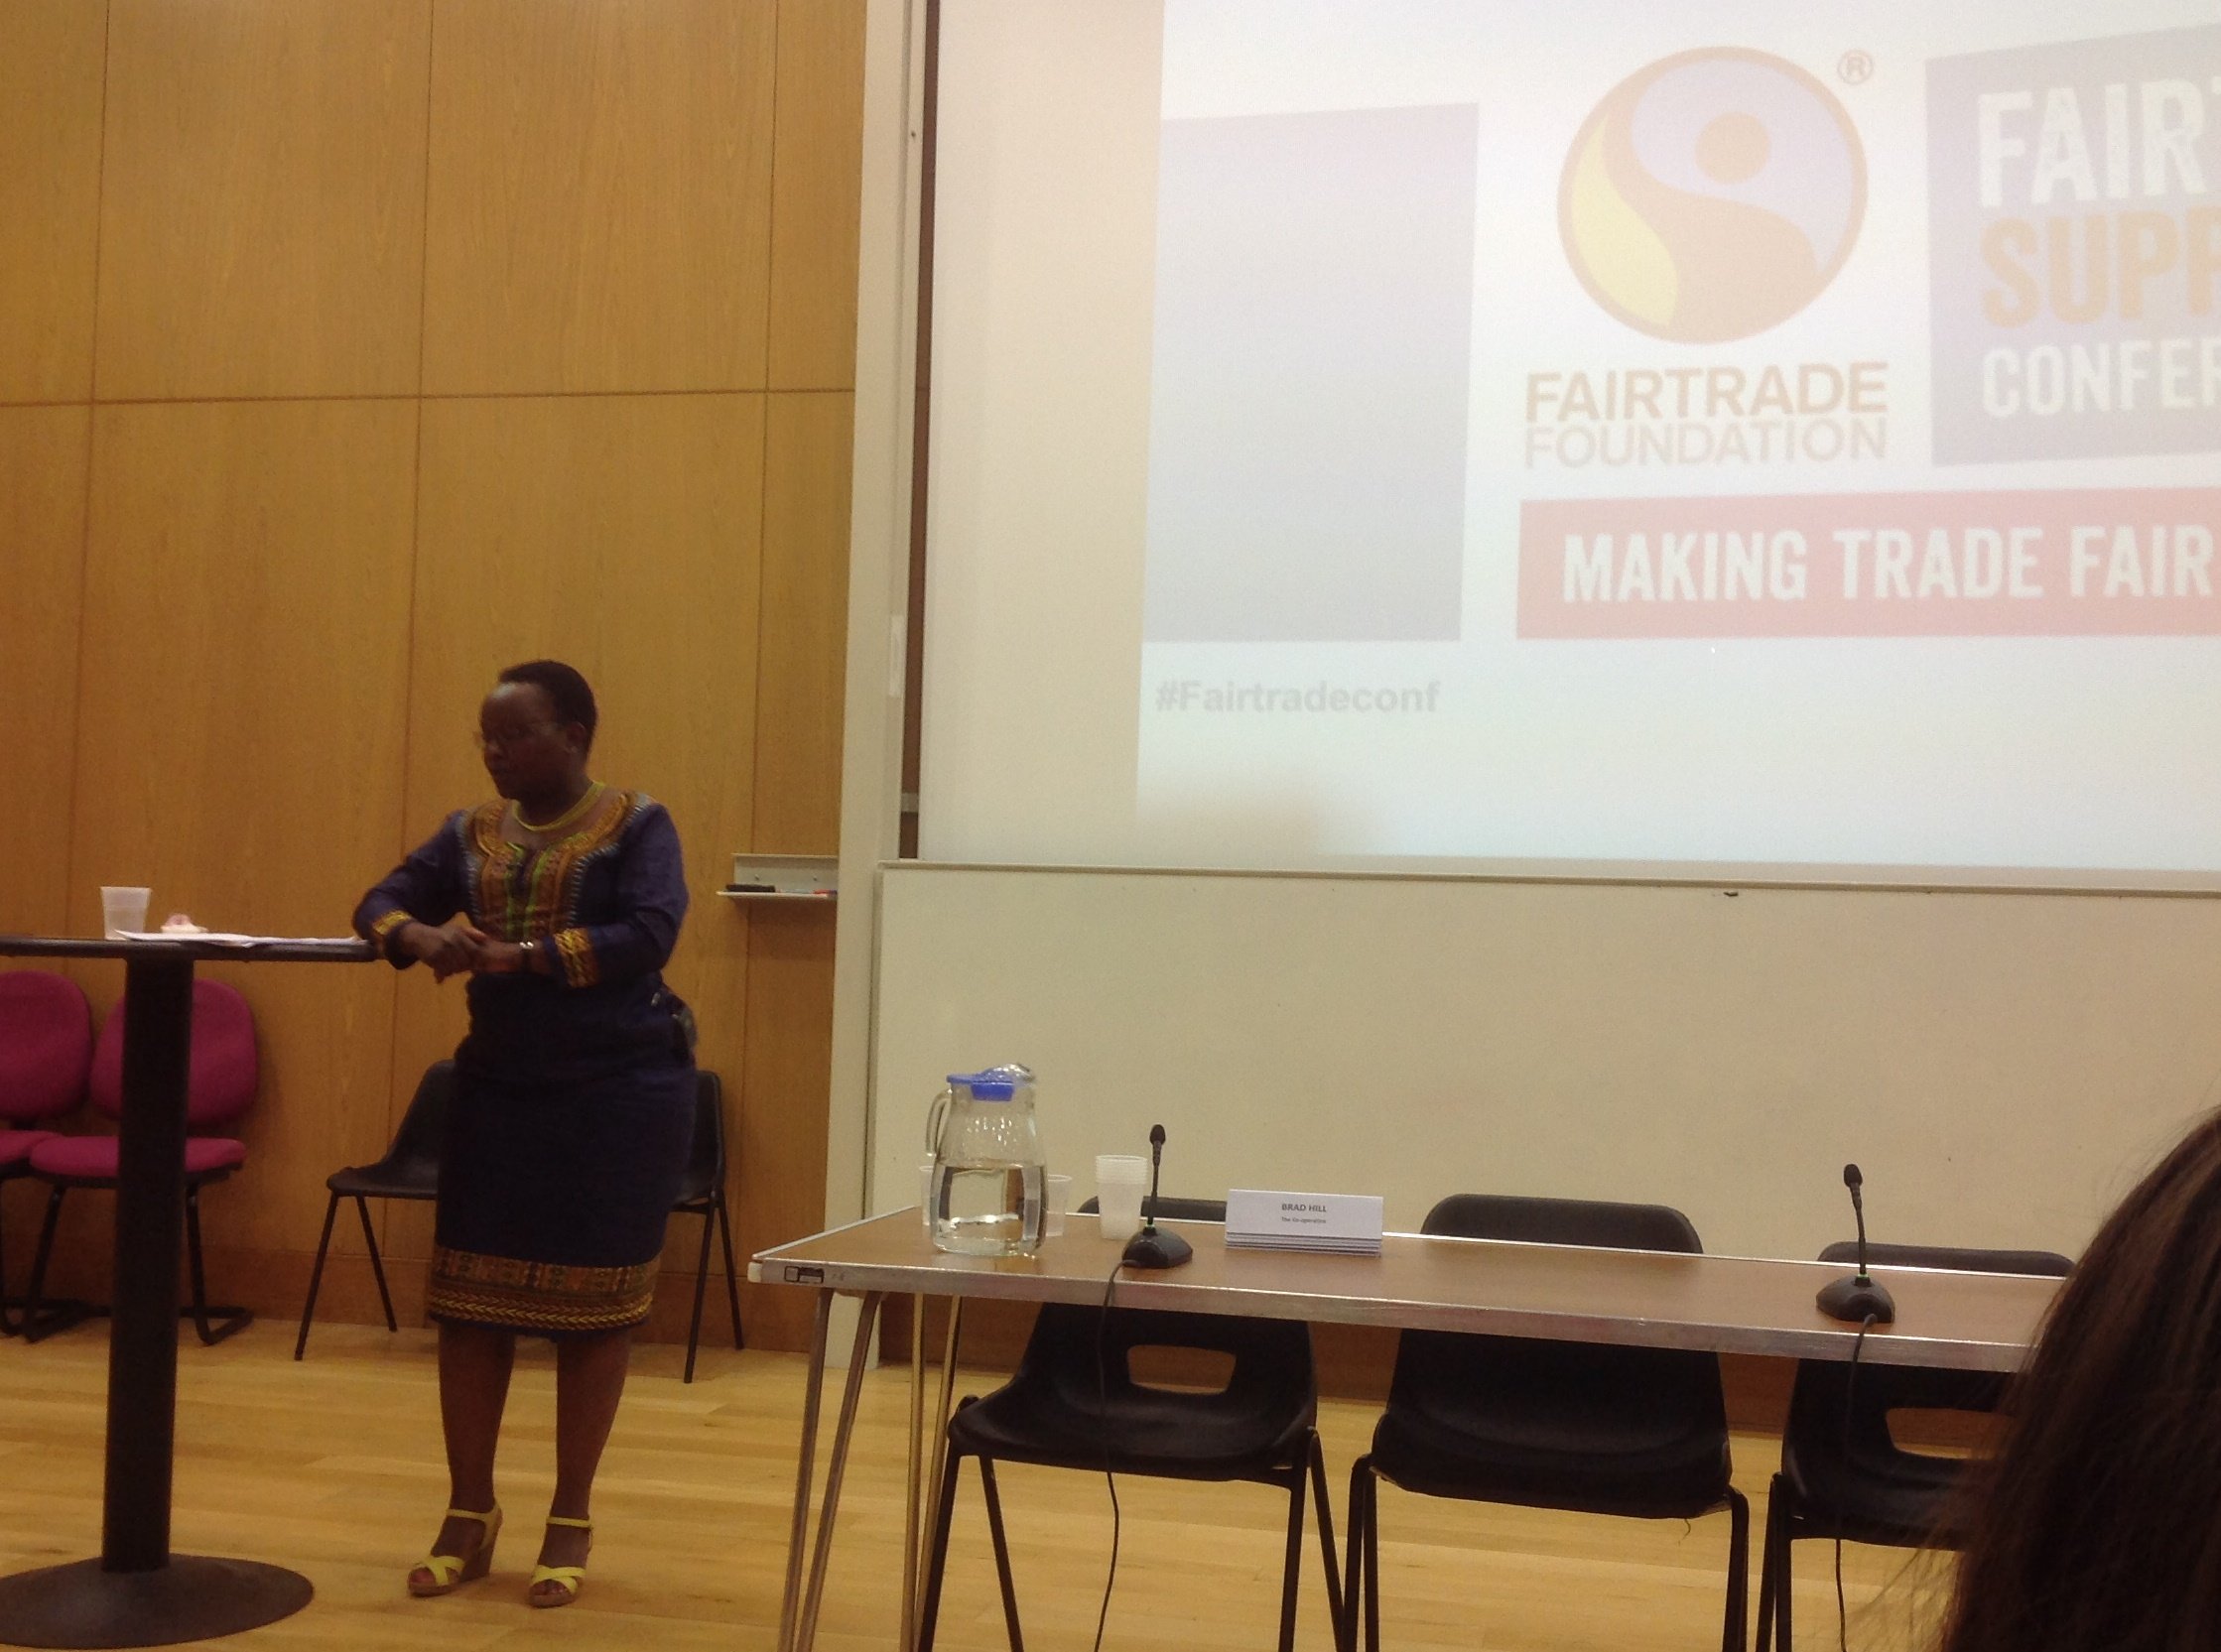 National Fairtrade Supporters Conference 2015 - Faith Muisyo